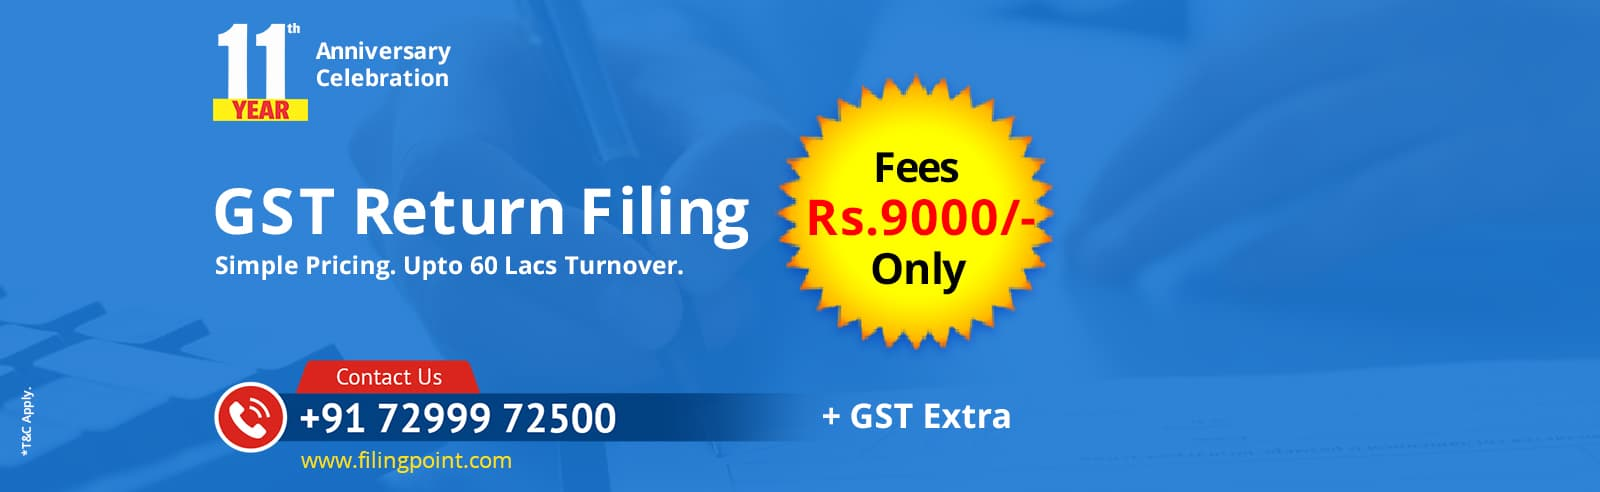 GST Filing Services Near Me Chennai LEELA APPARTMENT ALANDUR ALANDUR